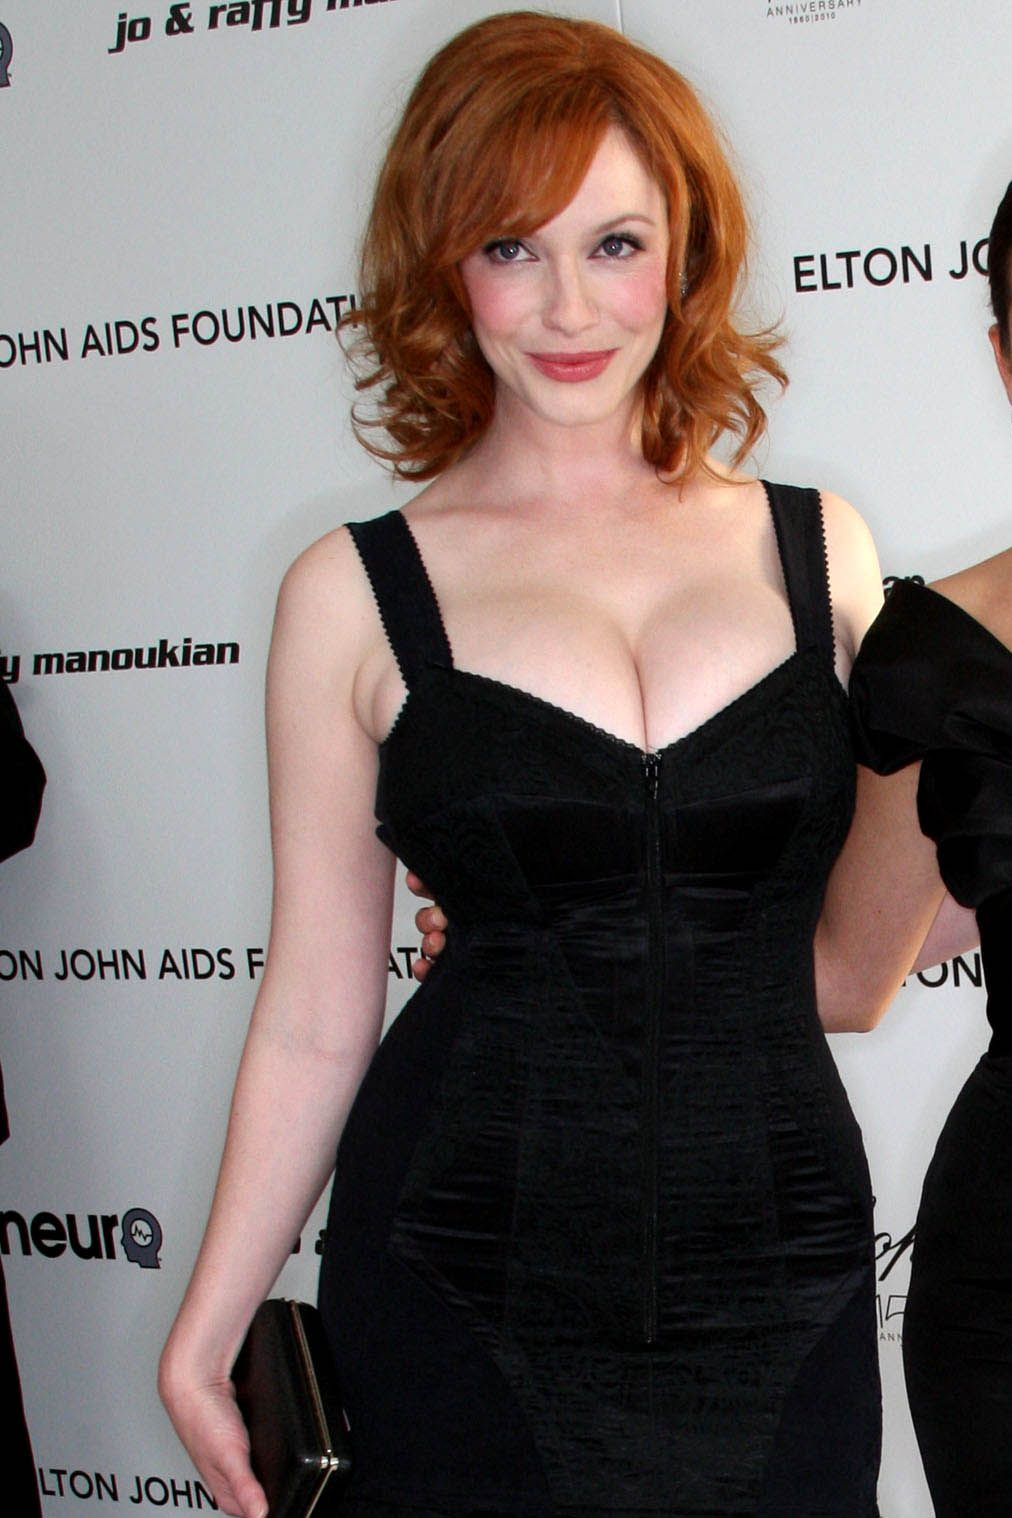 Celebrites Christina Hendricks nudes (18 foto and video), Topless, Is a cute, Selfie, braless 2006